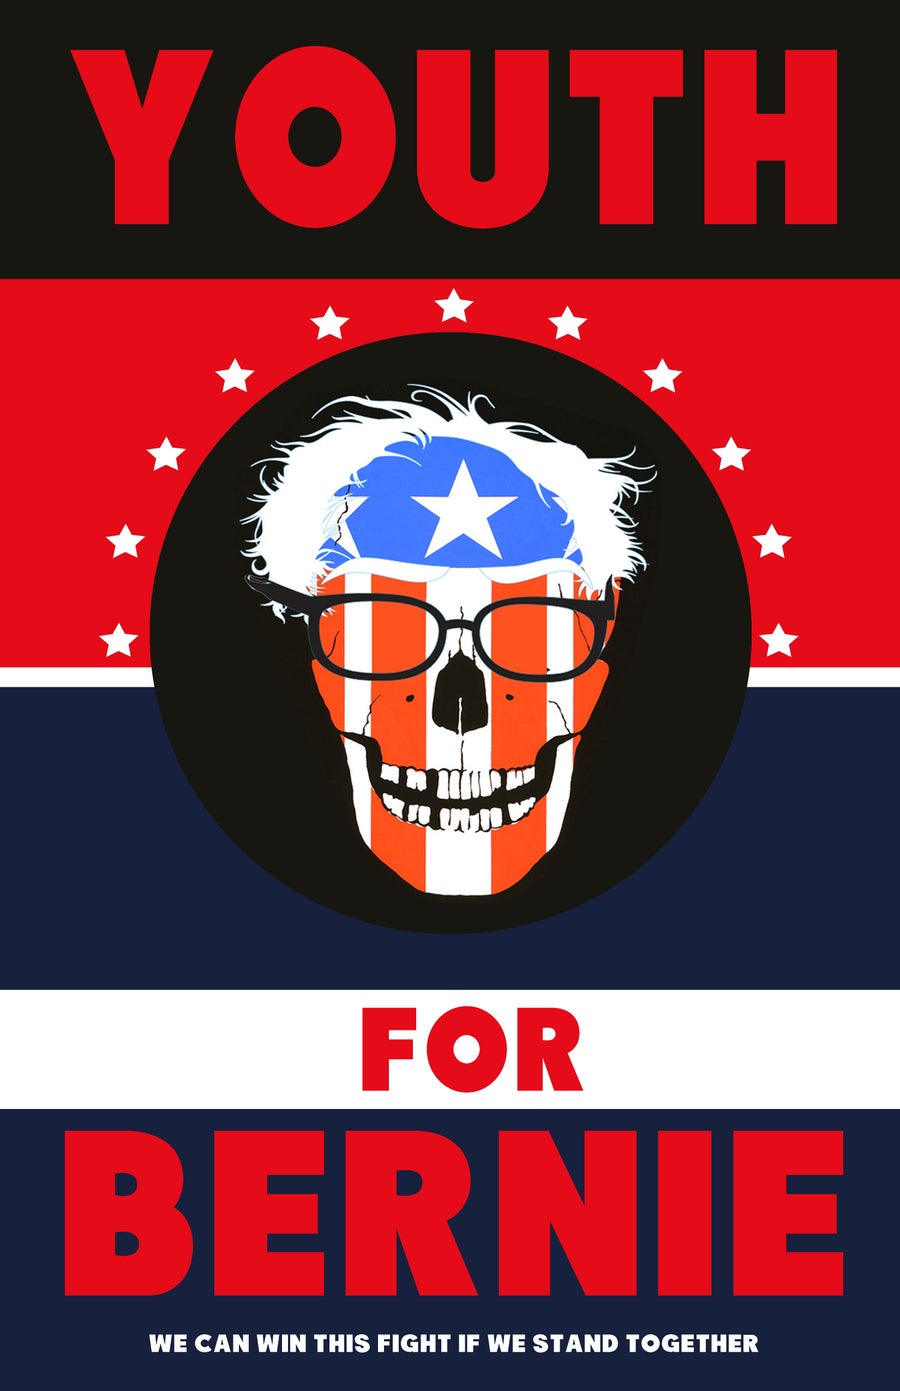 Image of YOUTH FOR BERNIE poster